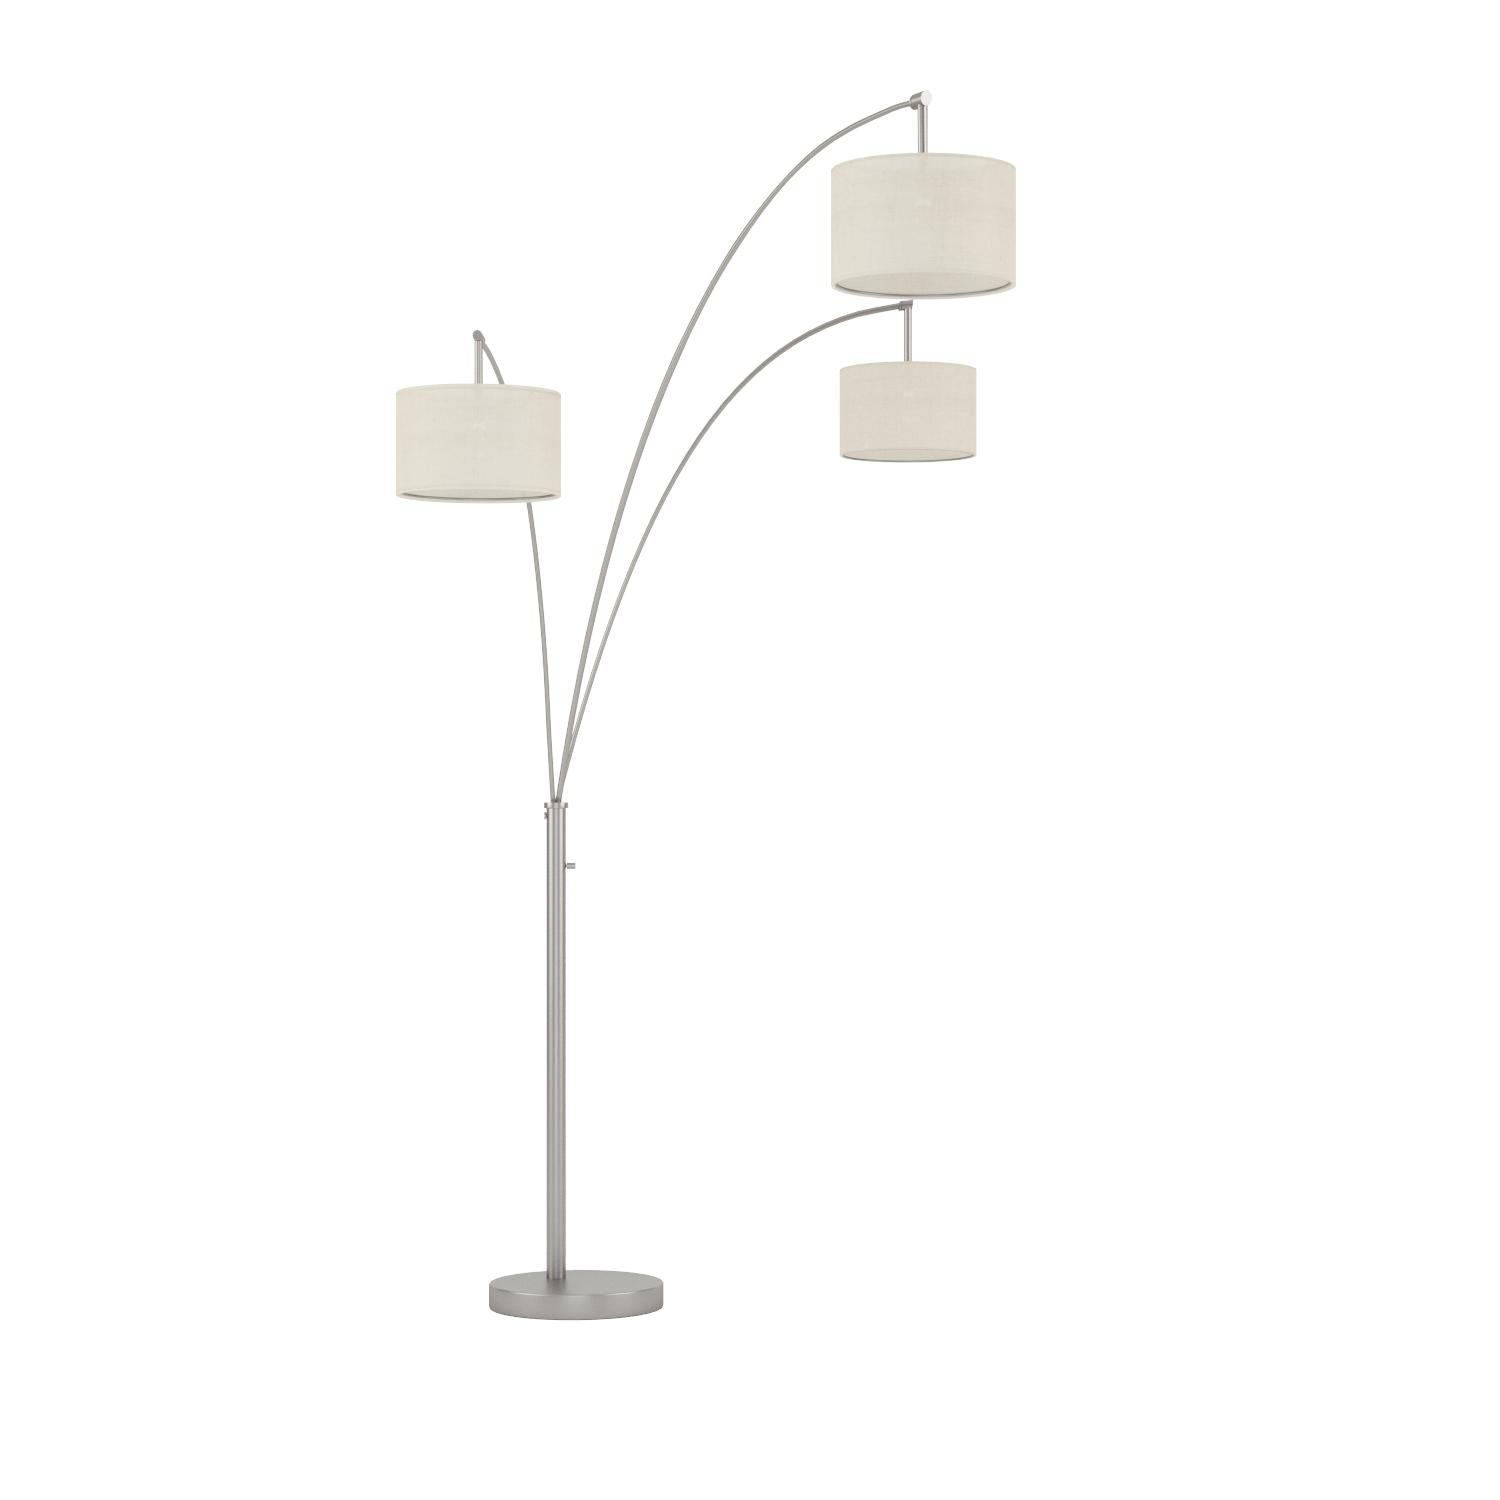 Artiva USA LED602108FSN Lumiere Modern LED 80-inch 3-Arched Brushed Steel Floor Lamp with Dimmer, 76, 71 inches high x 36 inches Wide x 36 inches Long by Artiva USA